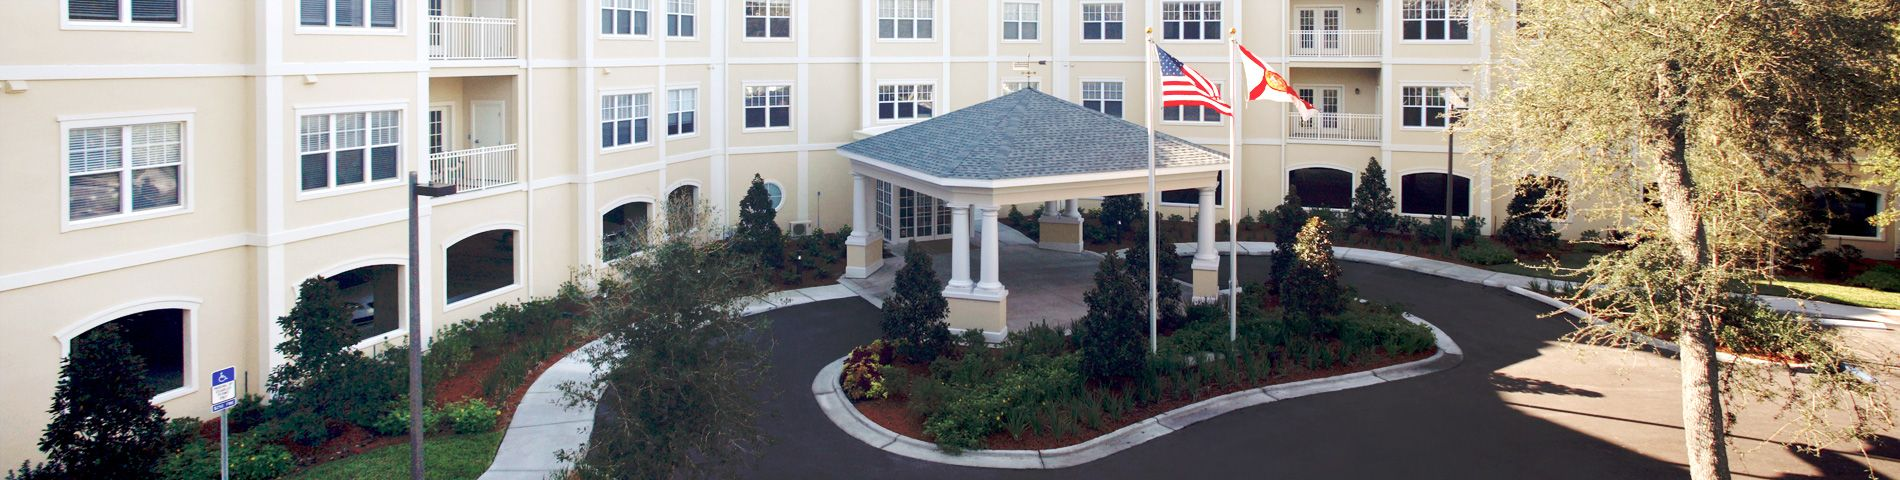 Amelia Island Independent Living Retirement